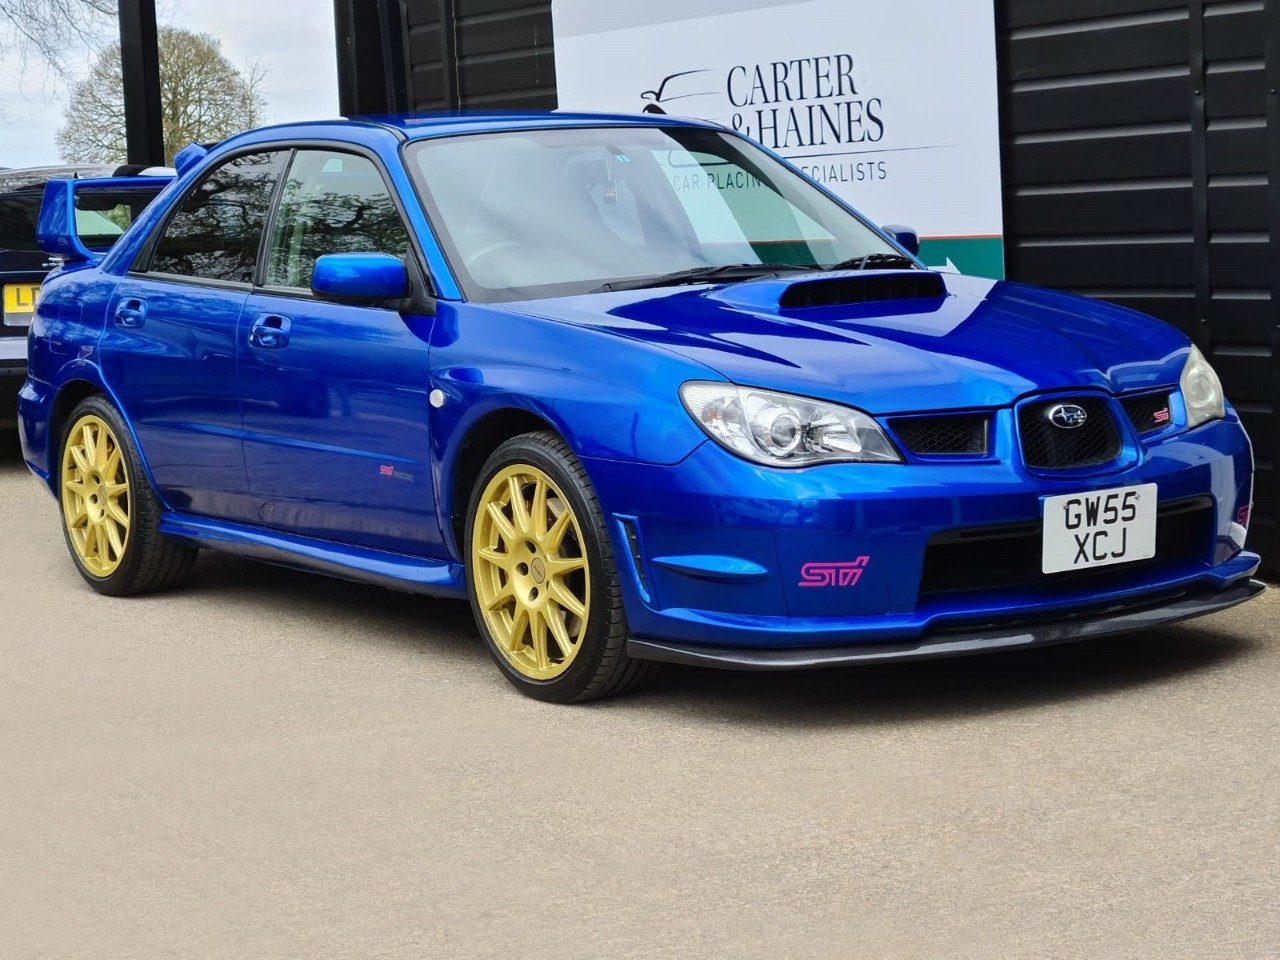 IMPREZA WRX STI (2006/55) Low Tax Band 368 BHP For Sale (picture 2 of 23)